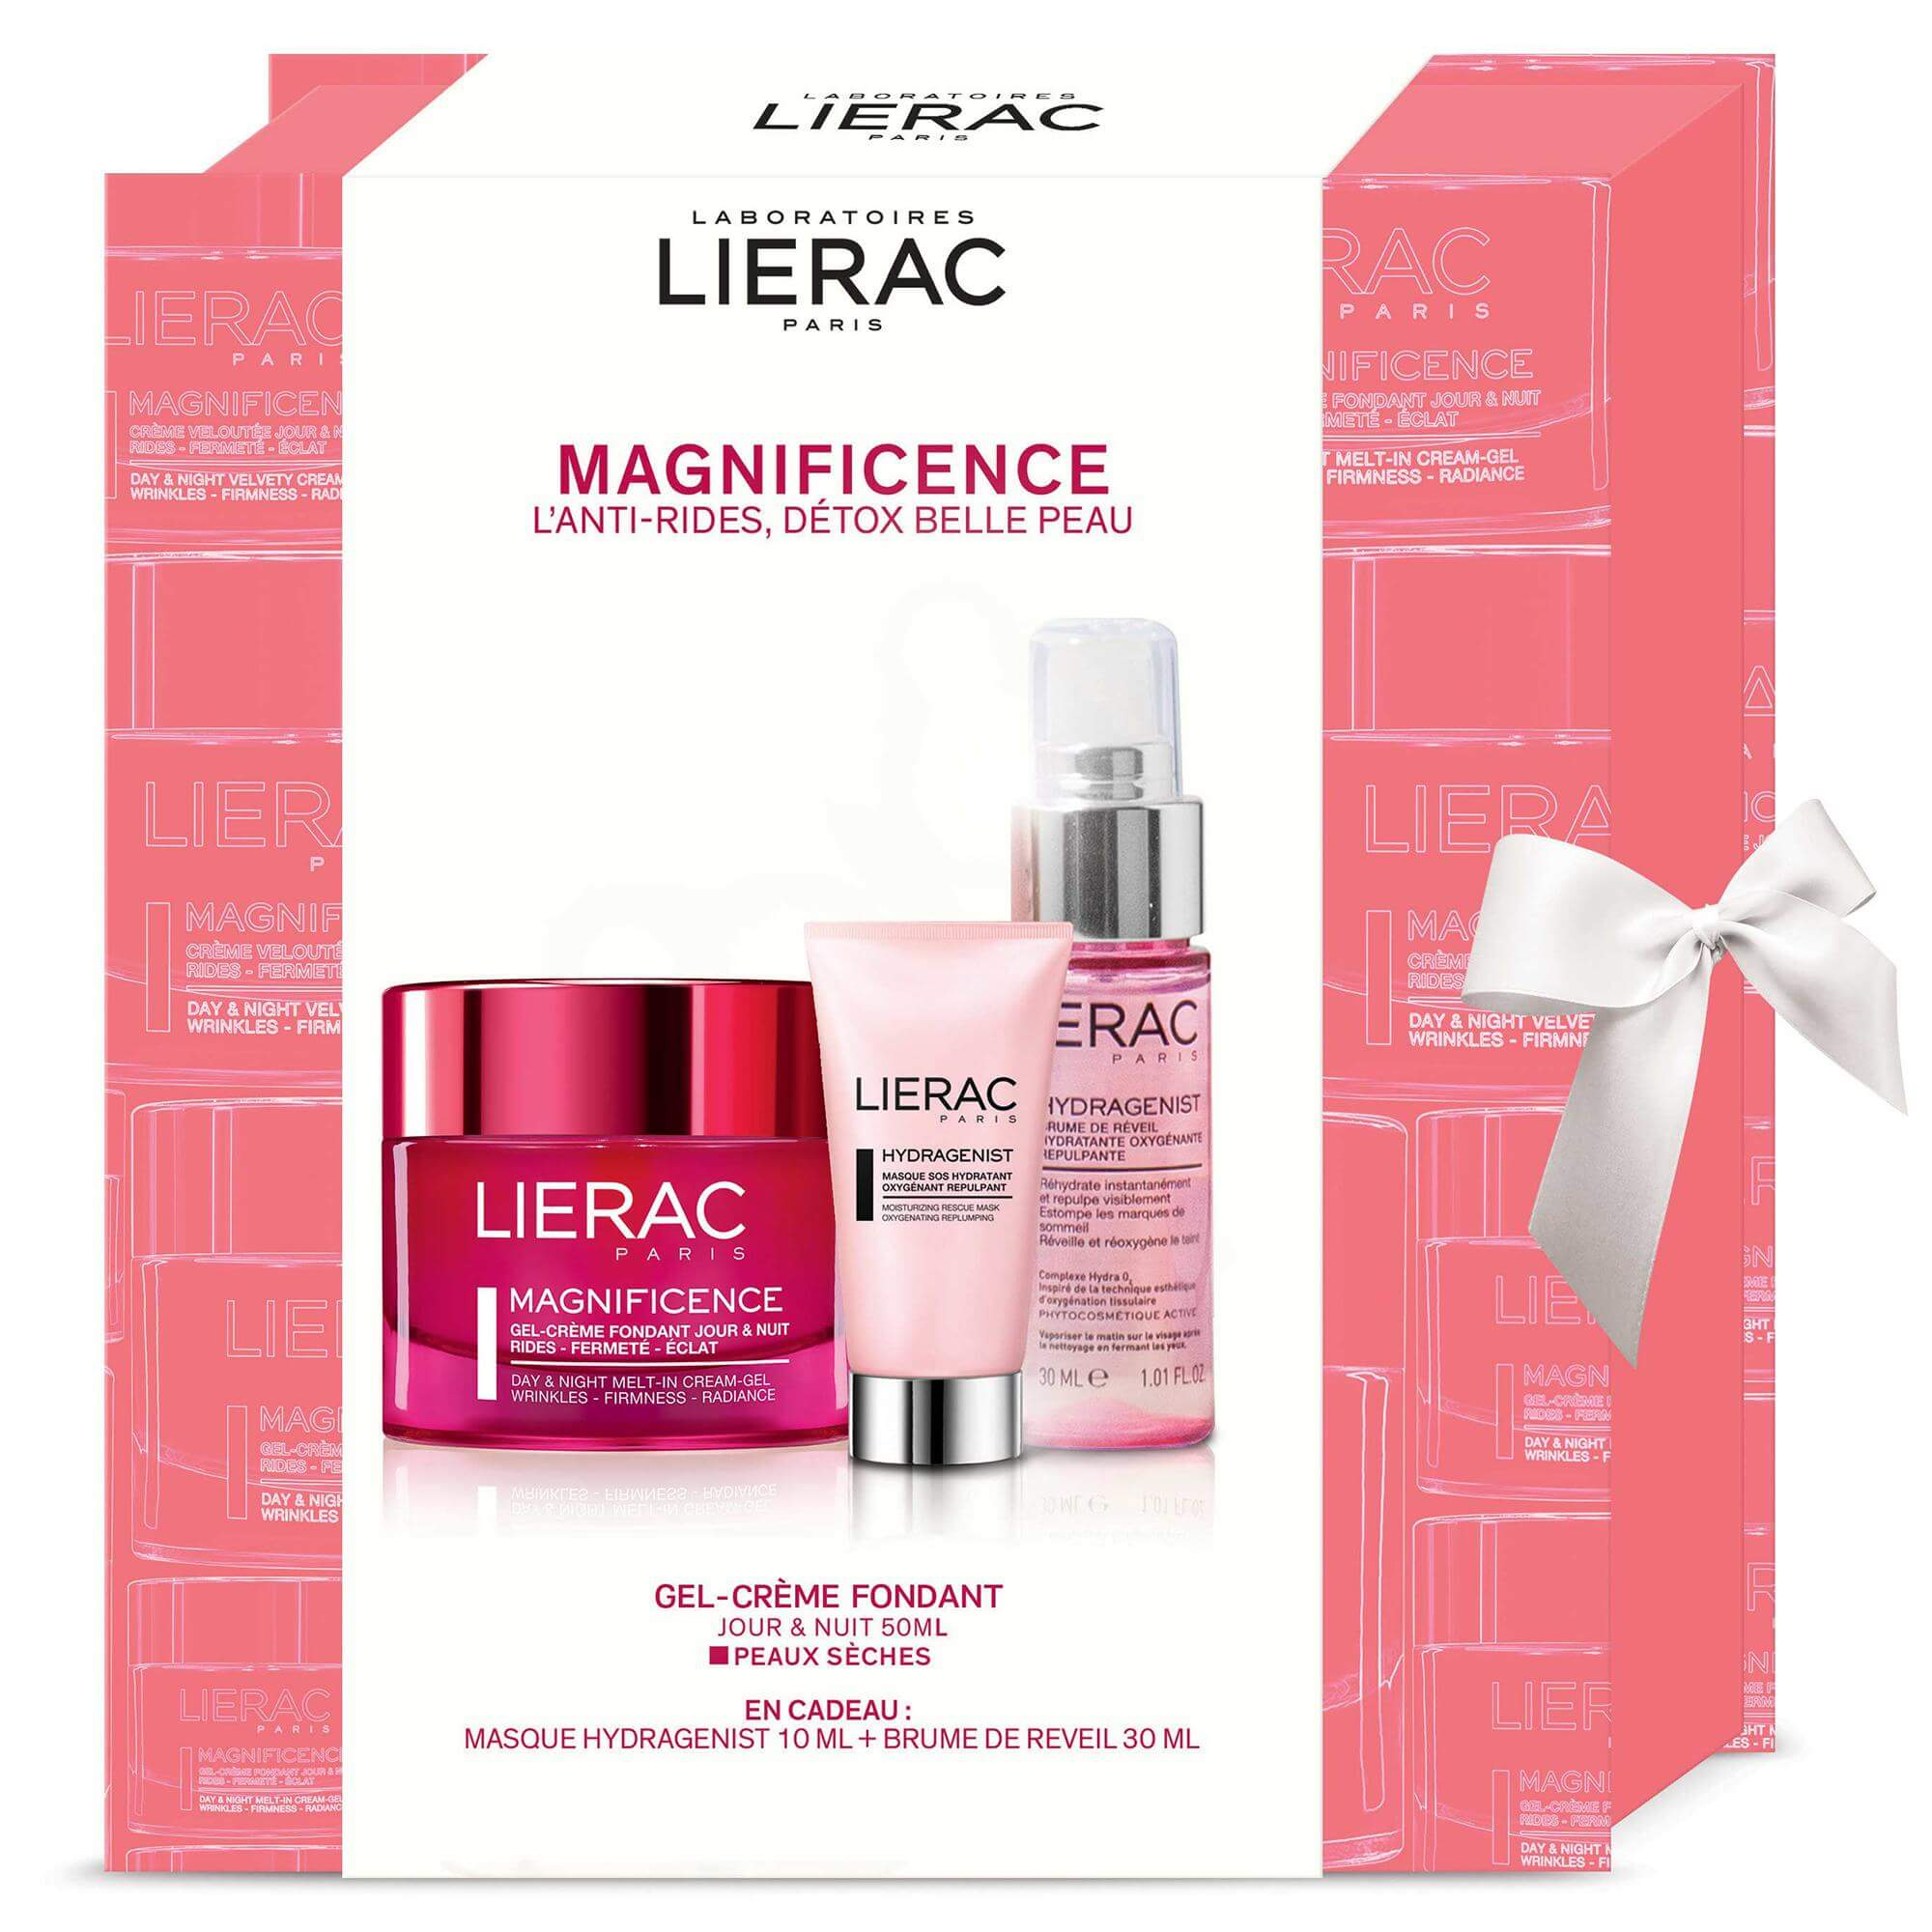 Lierac Πακέτο Προσφοράς Magnificence Gel-Creme Fondant Jour & Nuit 50ml & Δώρο Hydragenist Masque 10ml & Brume de Reveil 30ml